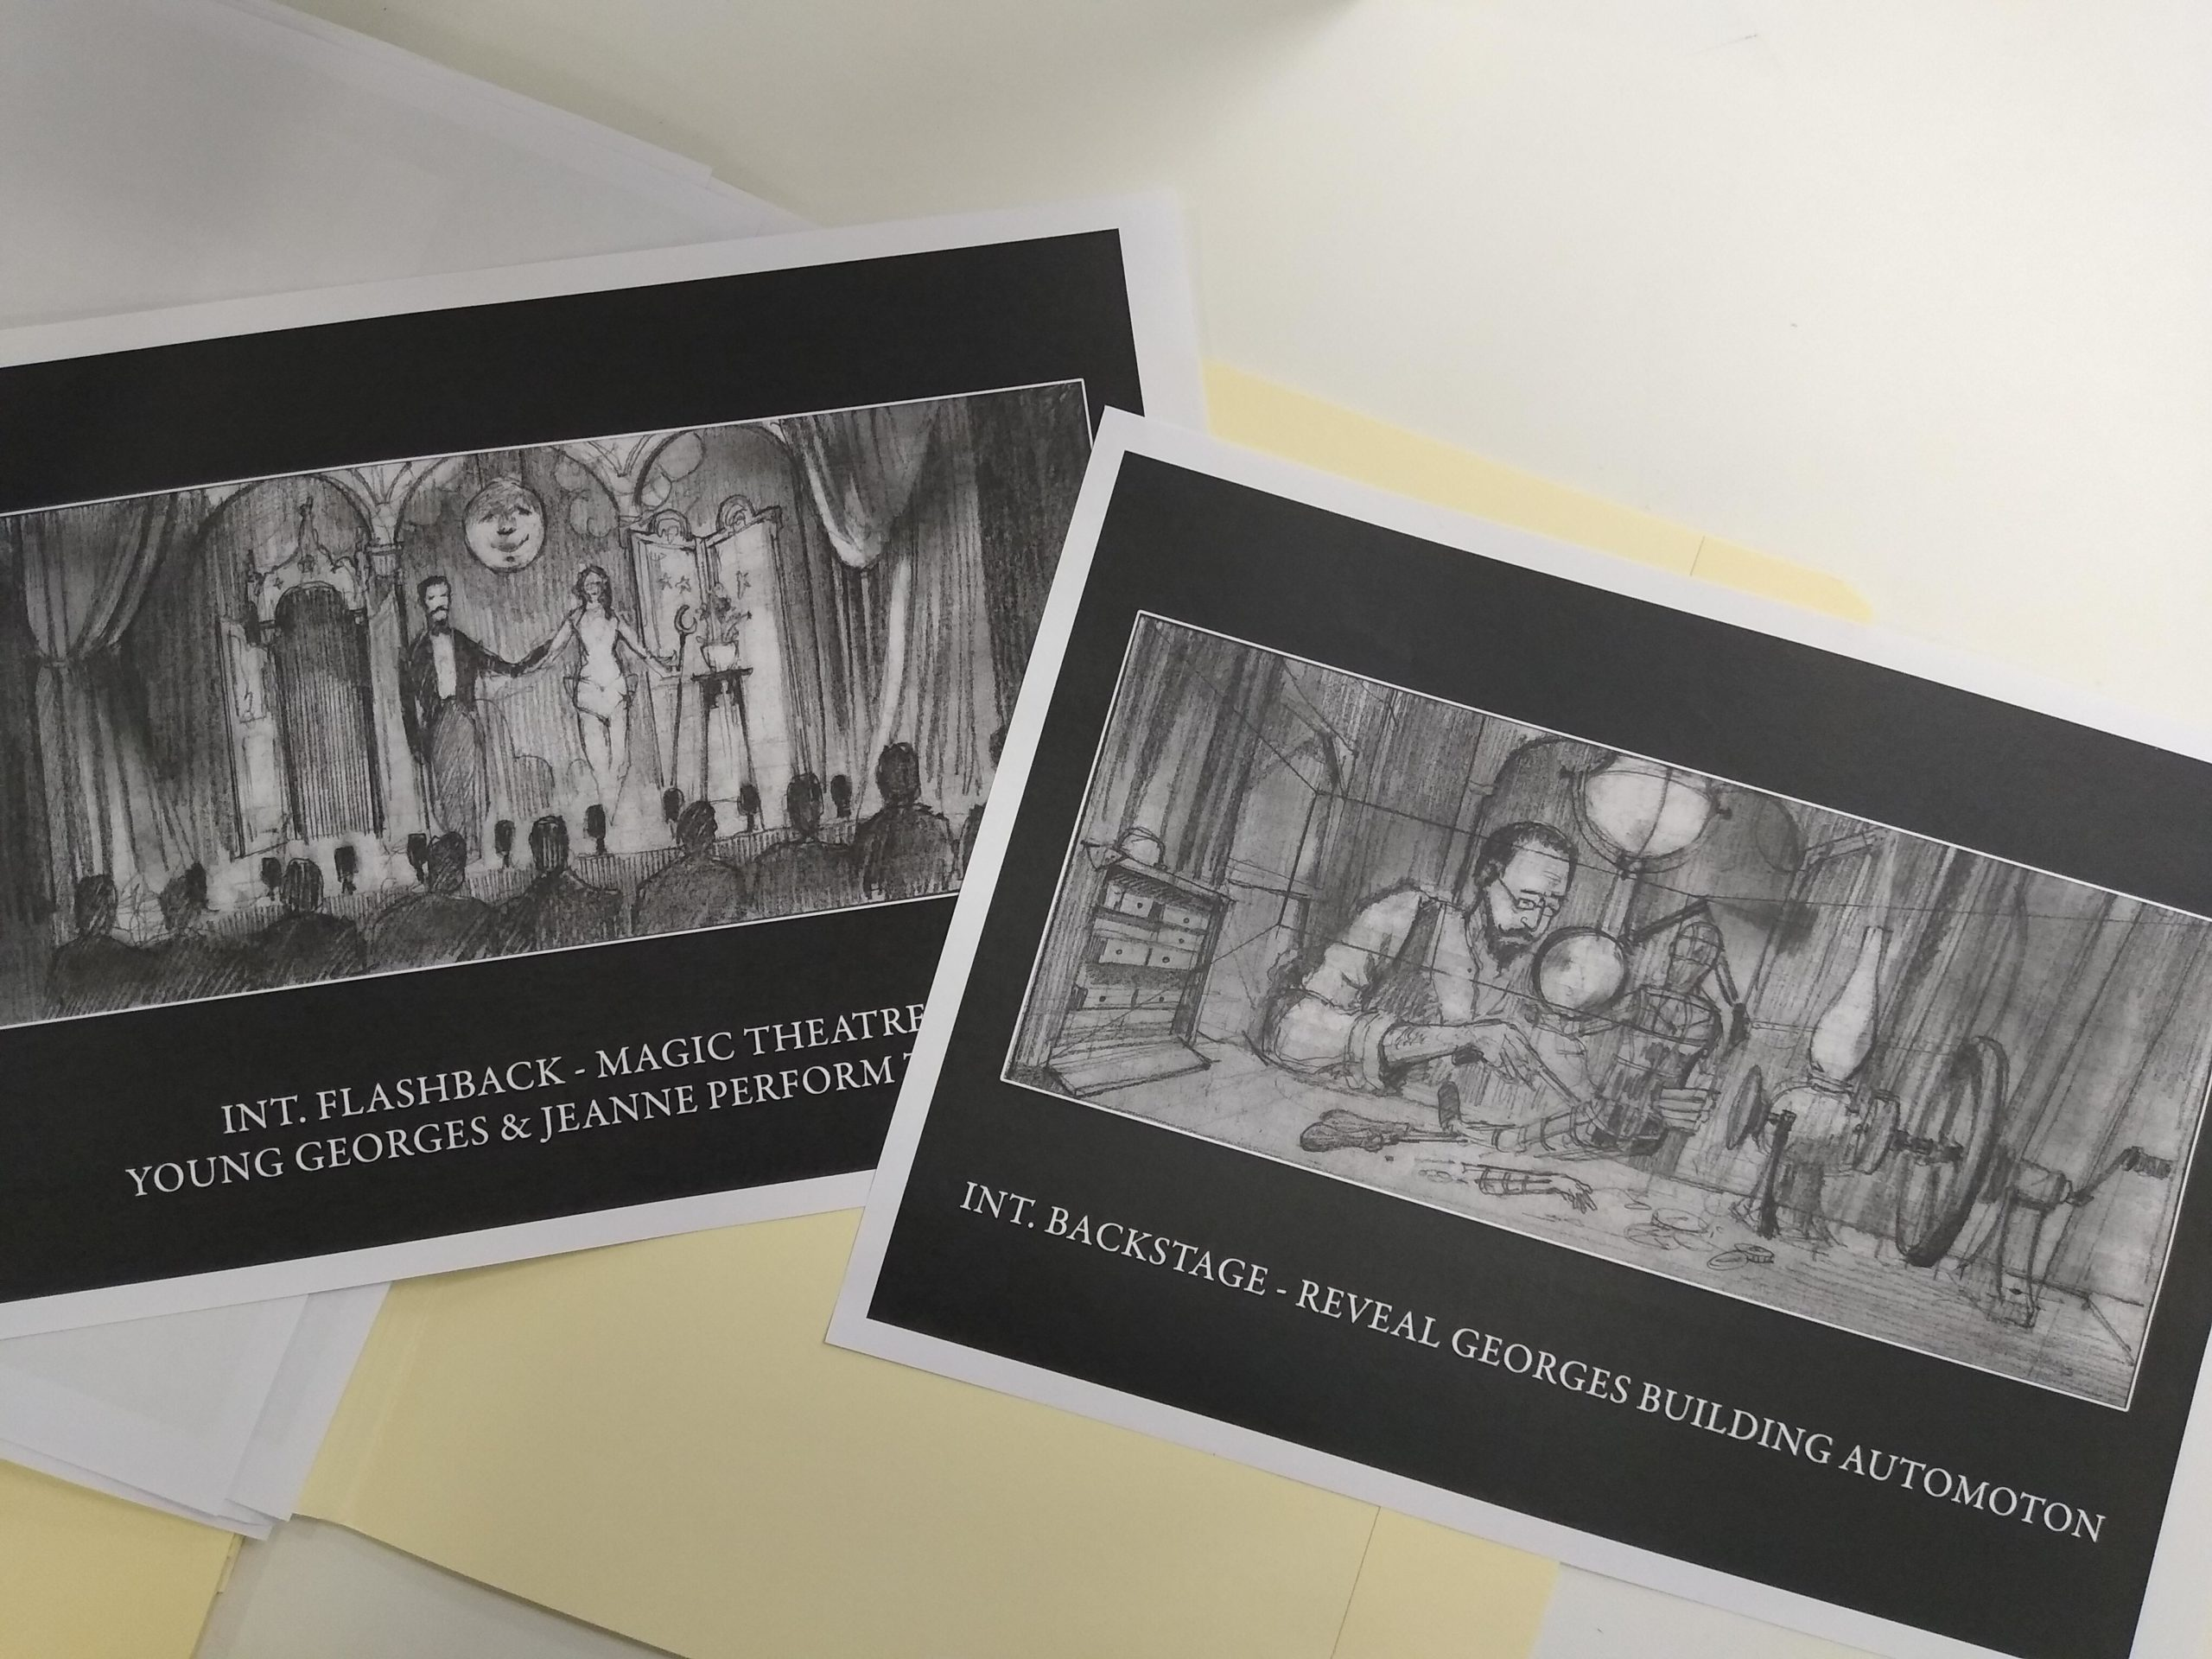 Storyboard images for scenes in the film Hugo